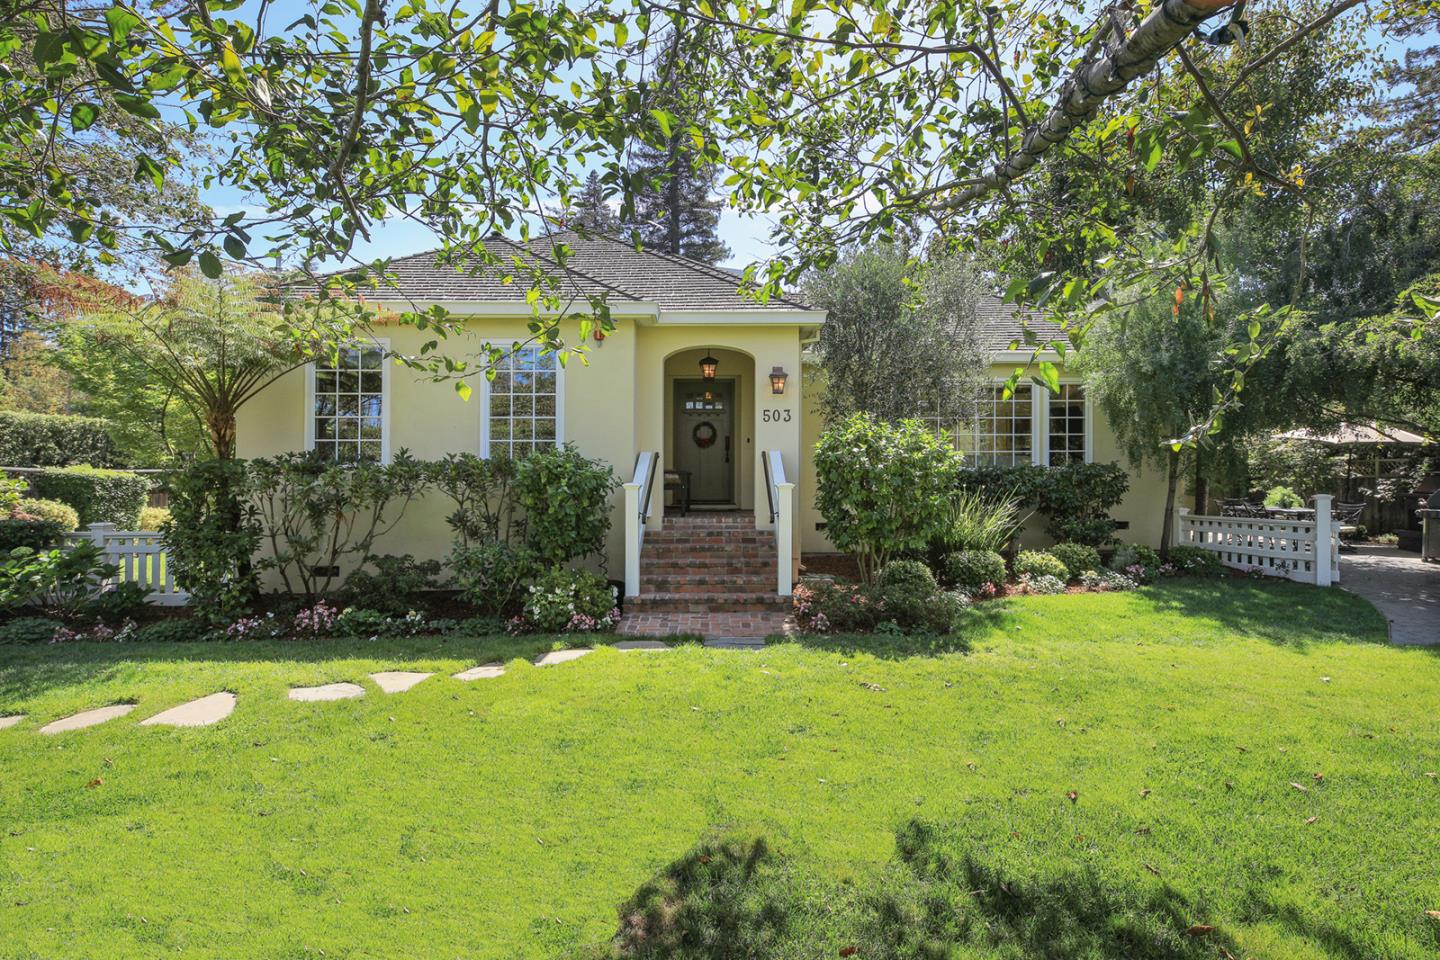 Single Family Home for Sale at 503 Barroilhet Avenue 503 Barroilhet Avenue San Mateo, California 94402 United States